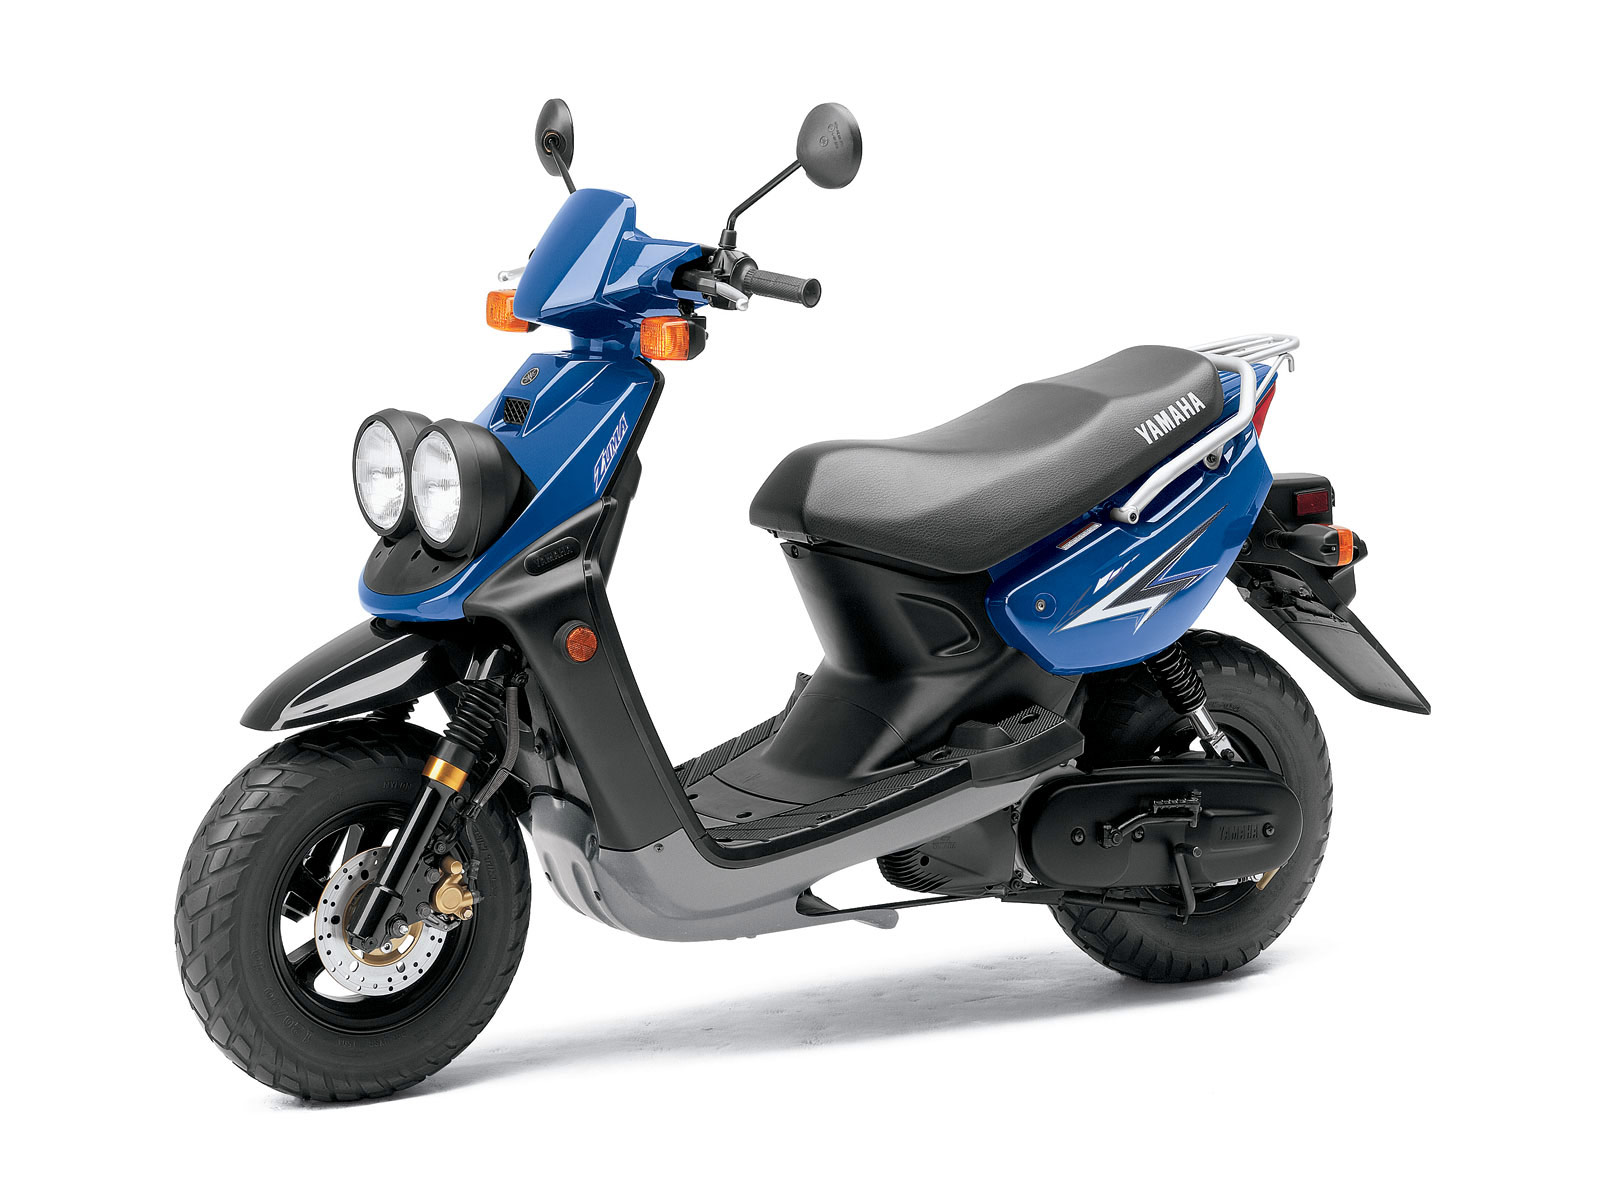 yamaha zuma 50 scooter pictures accident lawyers insurance. Black Bedroom Furniture Sets. Home Design Ideas